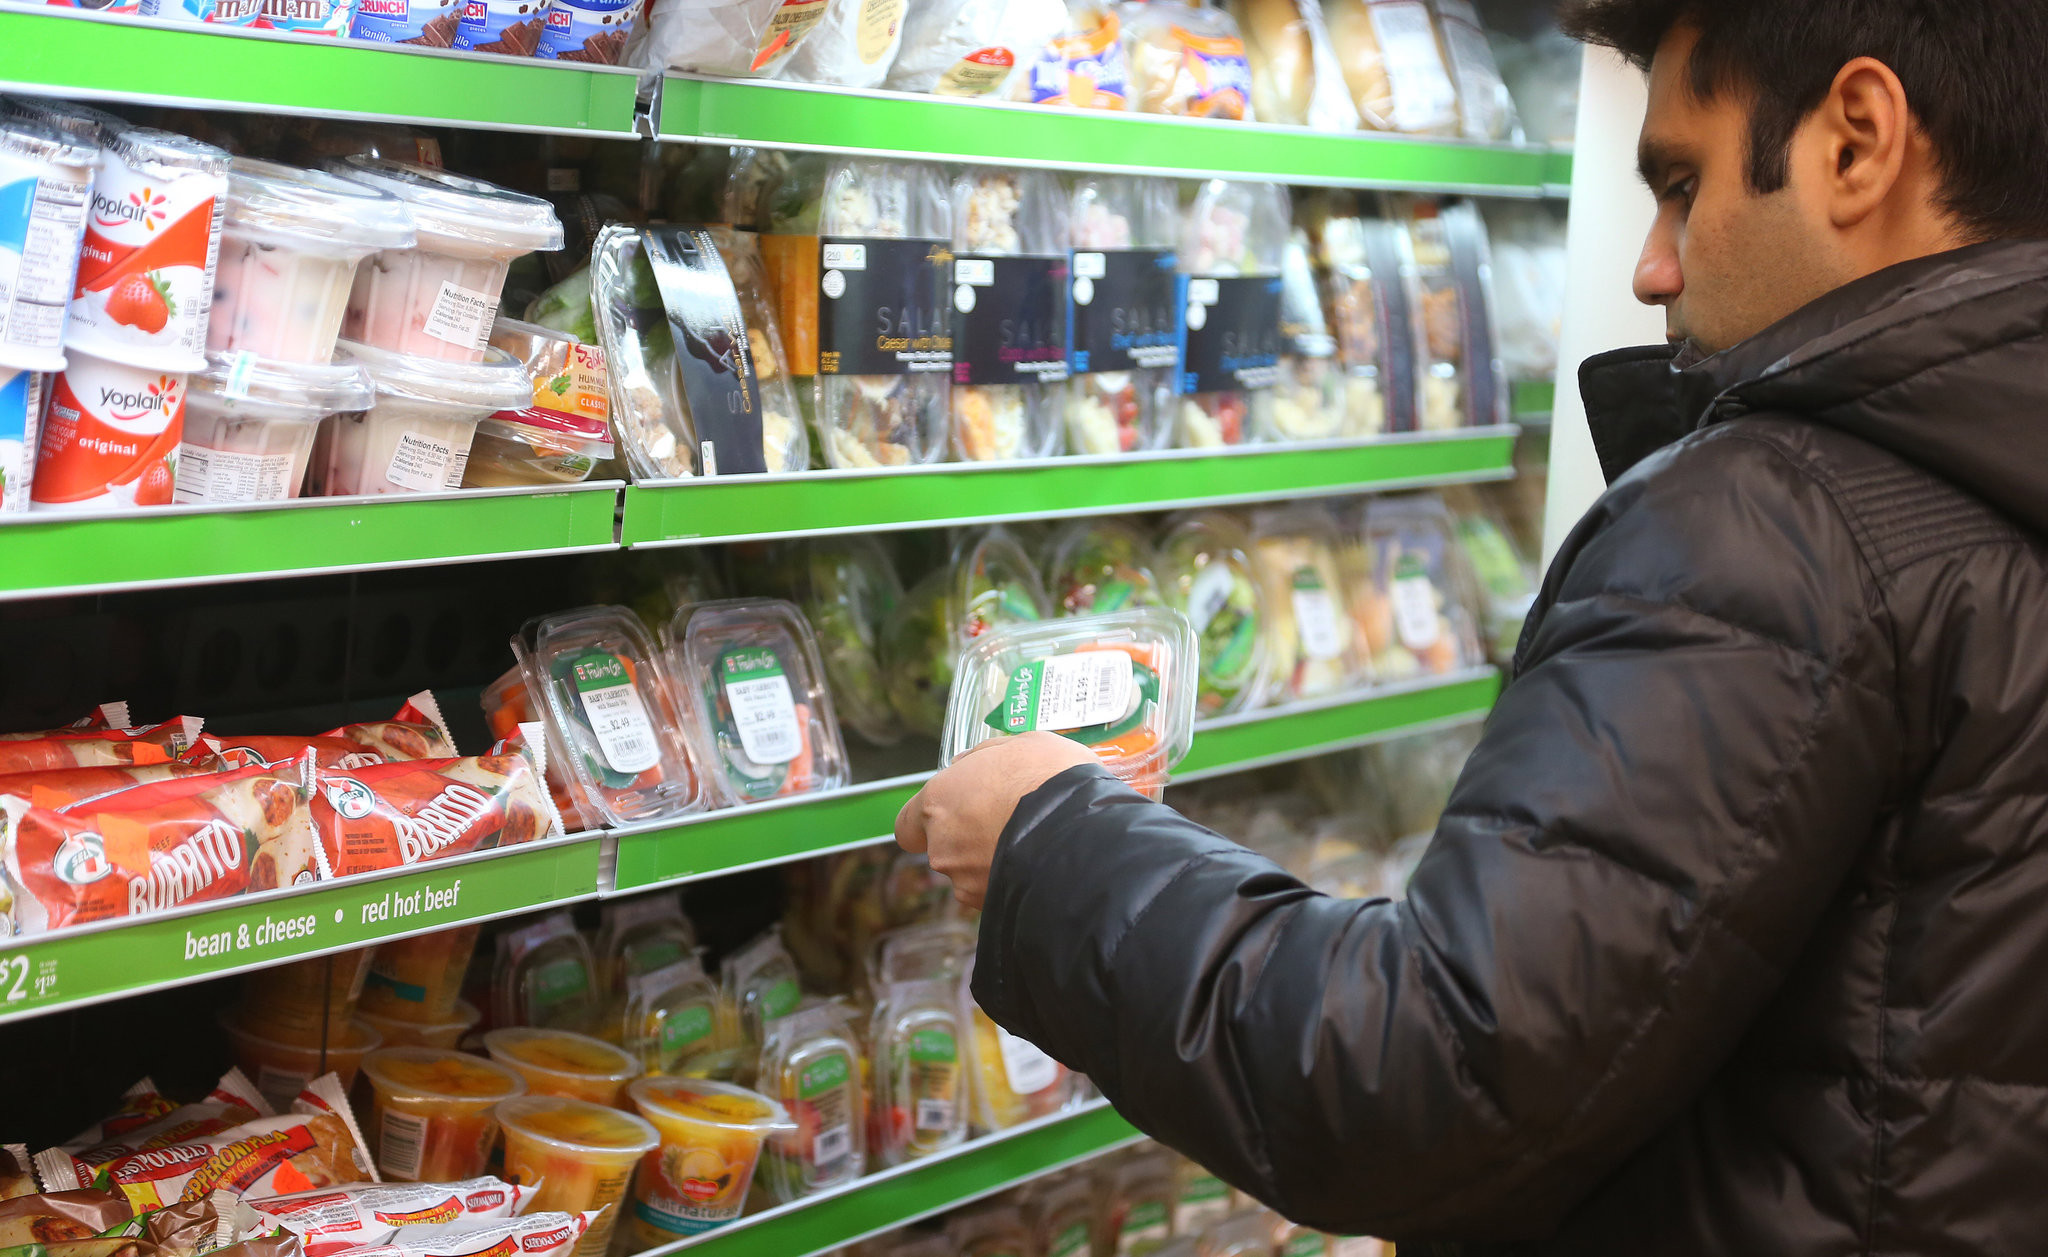 Healthy Snacks At 711  7 Eleven Stores Focus on Healthier Food Options NYTimes